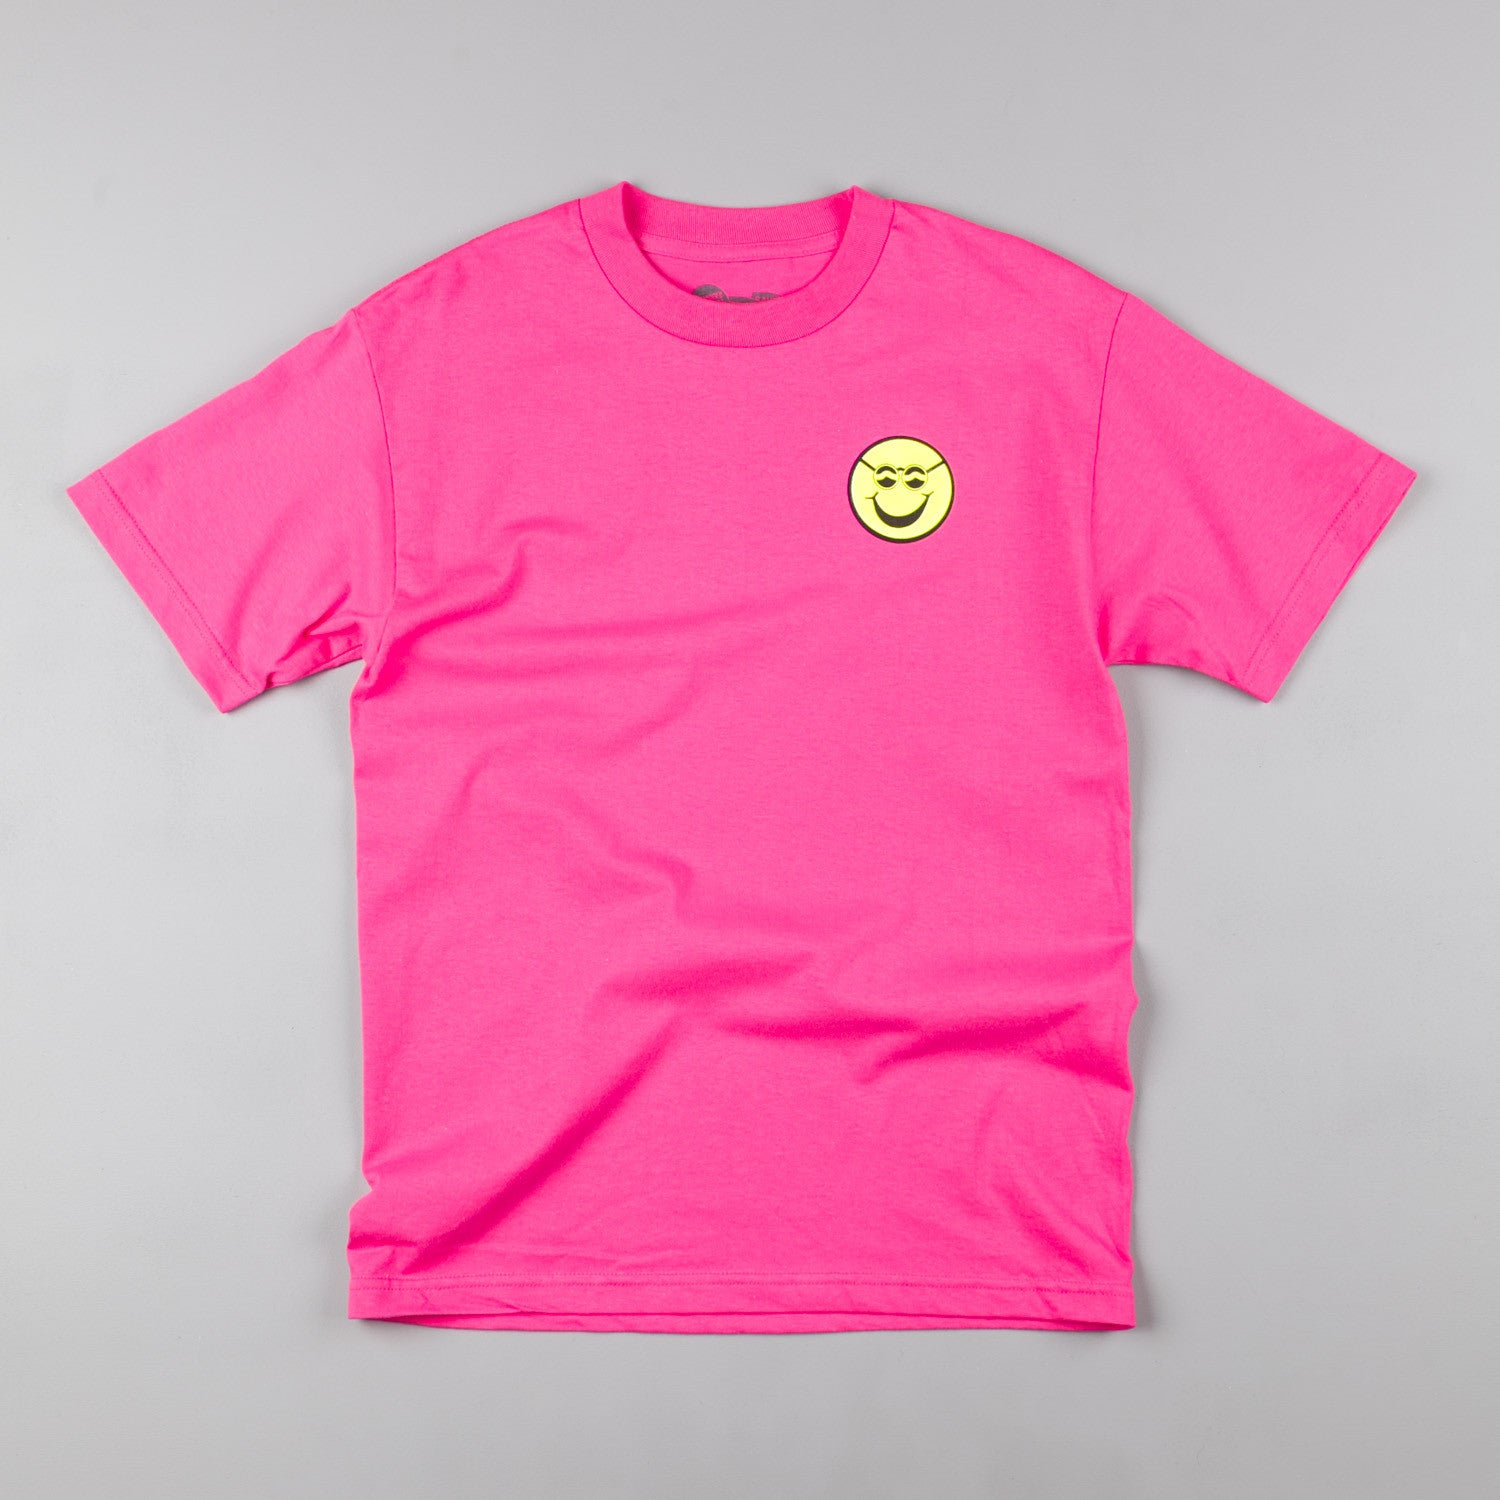 Manager's Special Window Sign T-Shirt - Pink